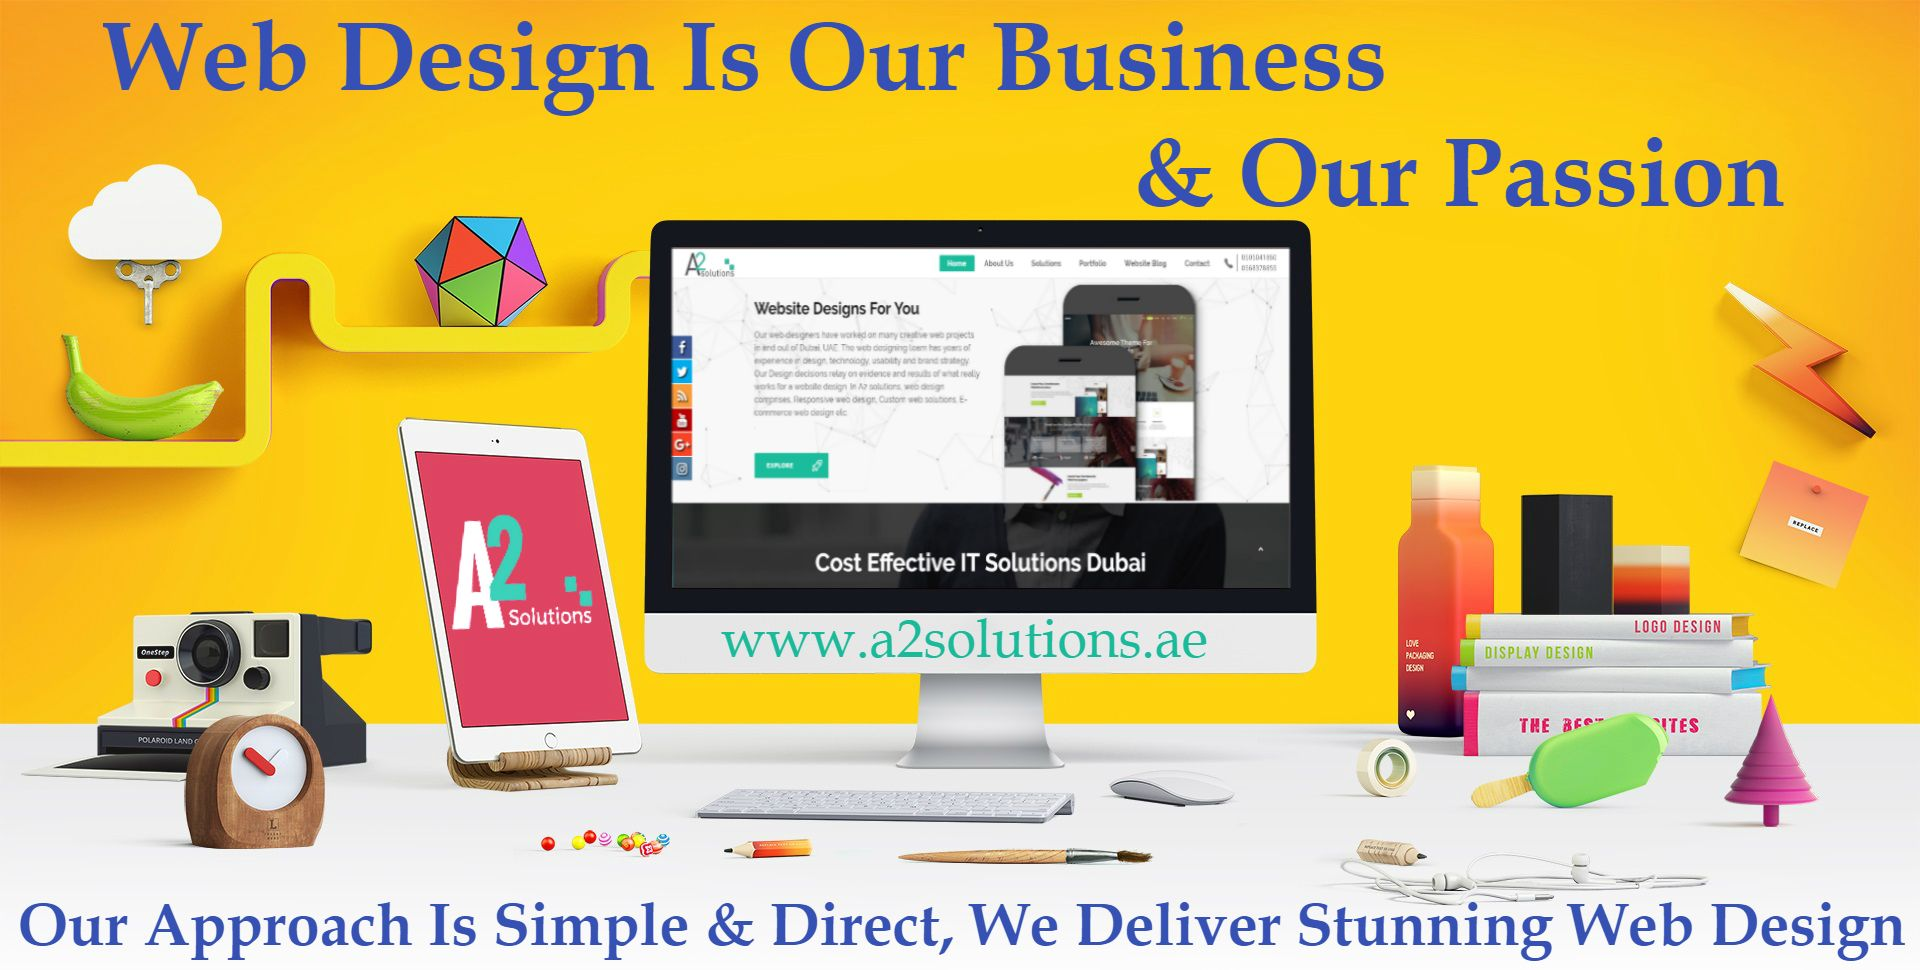 Web Design Company Abu Dhabi Website Design Services Uae Web Development Design Website Design Company Web Design